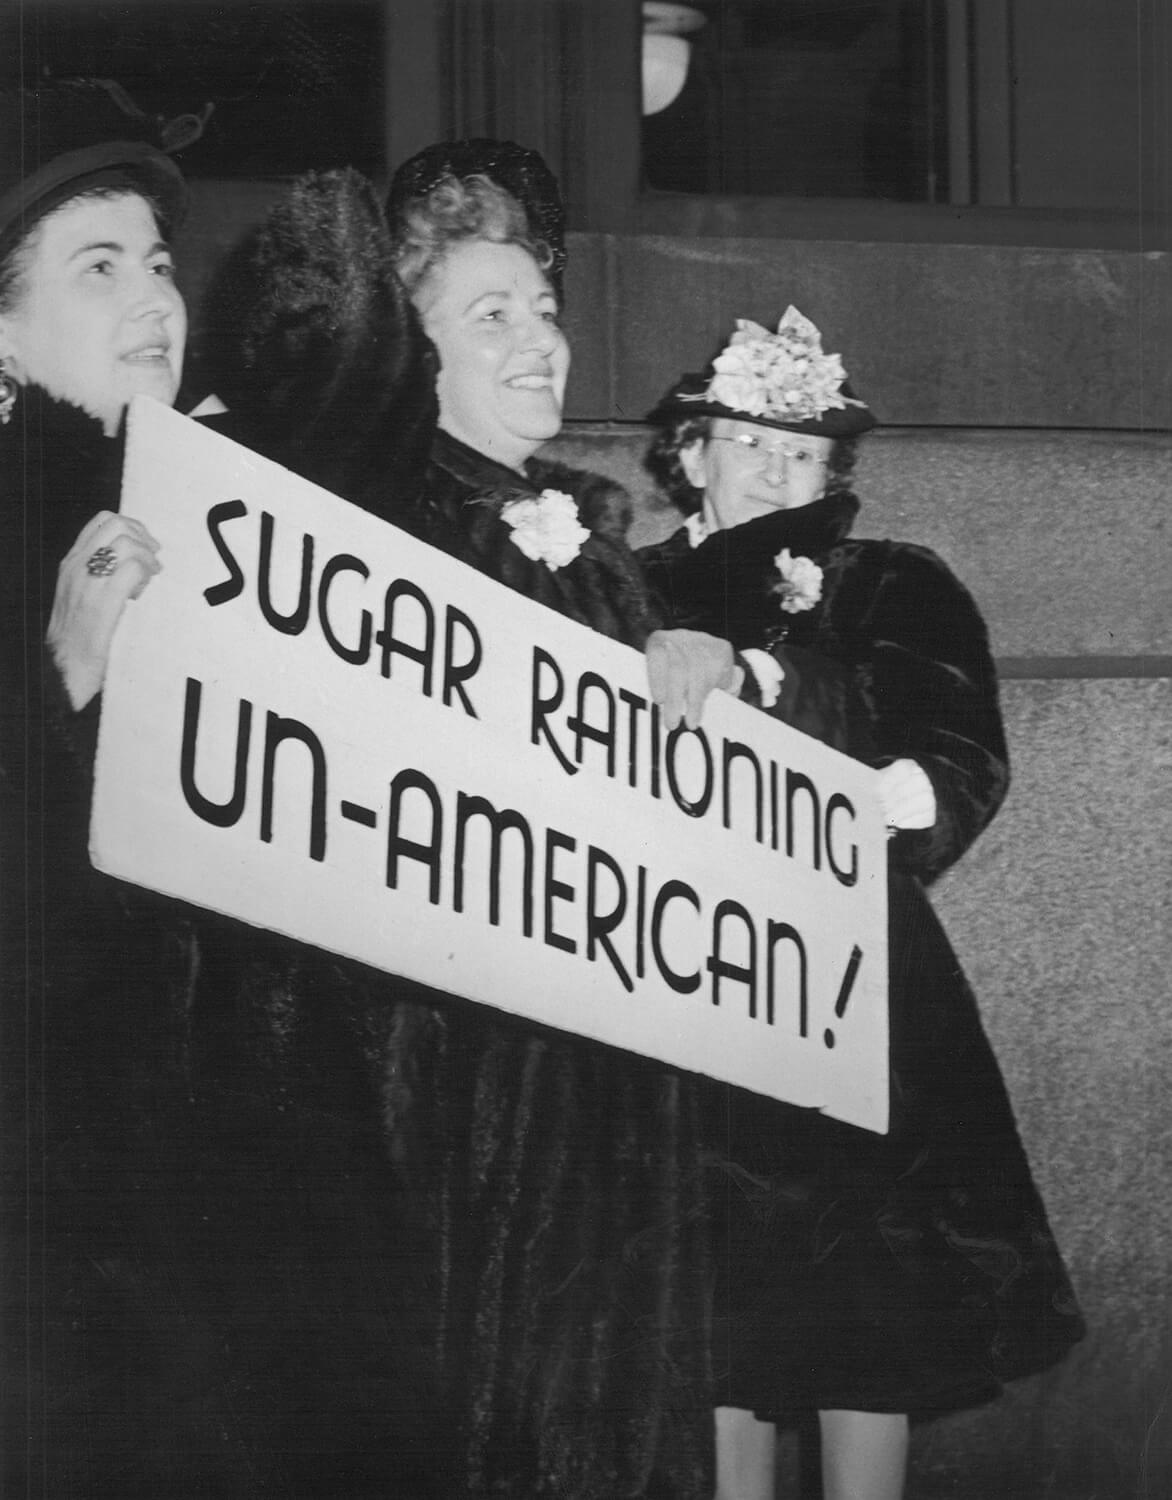 Sugar Rationing Protest, 1940s